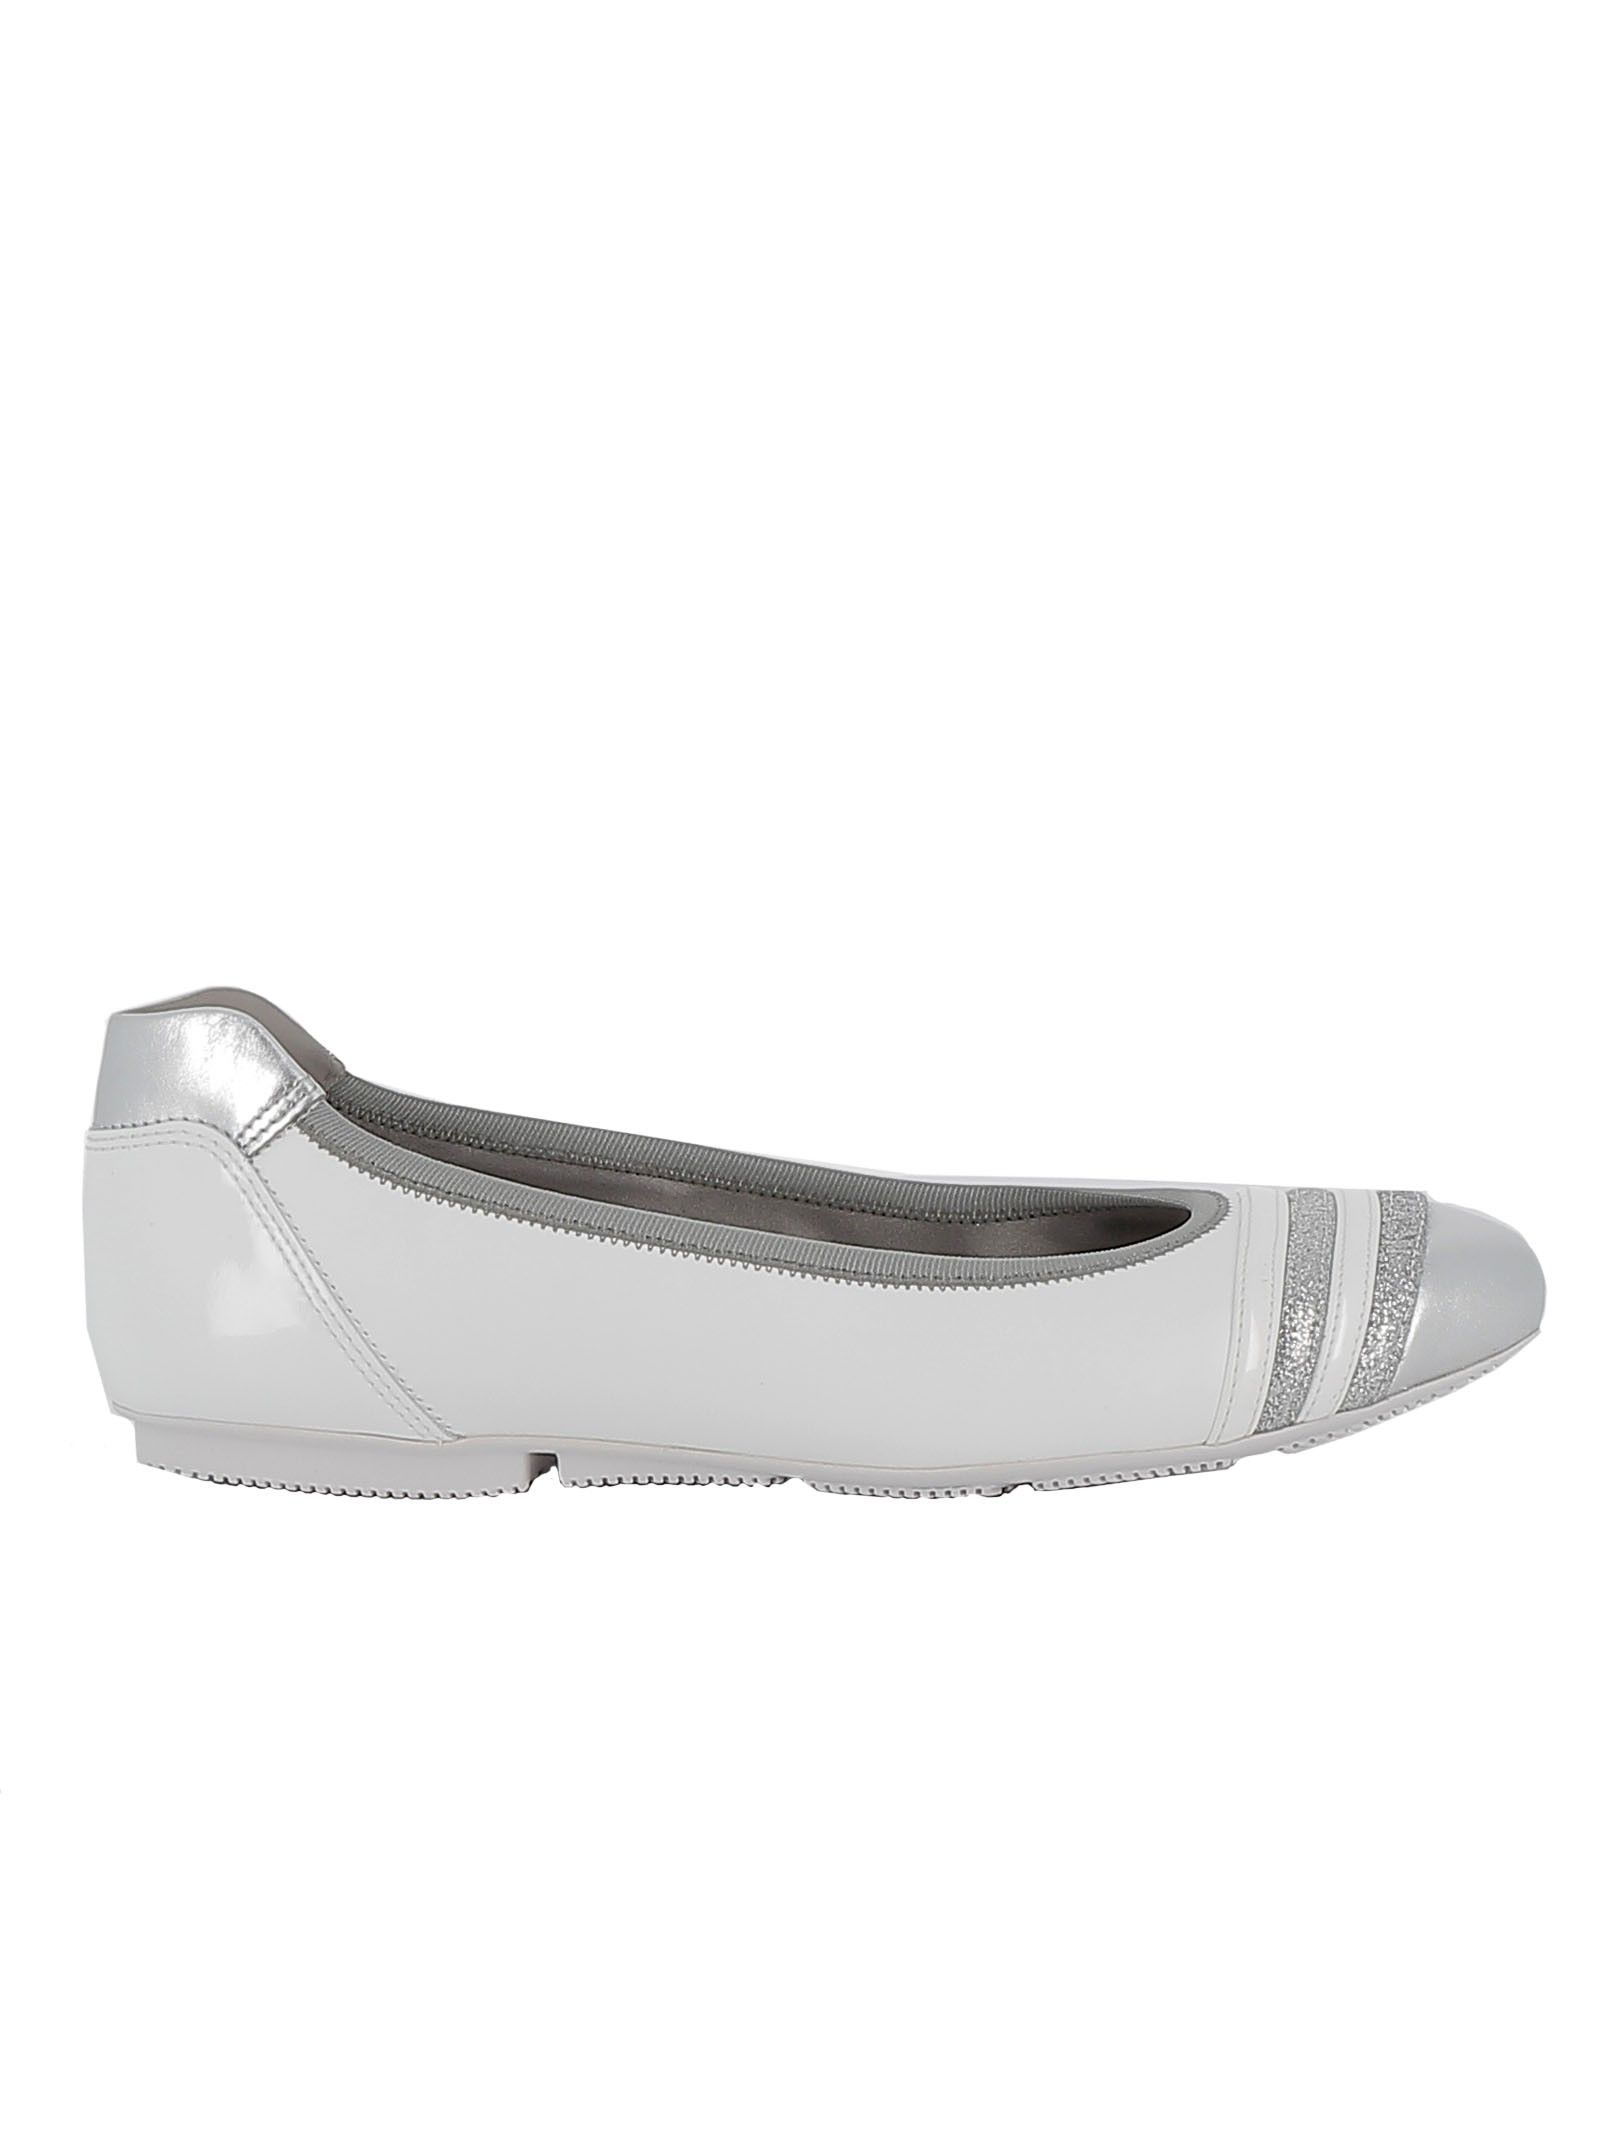 Hogan Wrap-h144 Leather Flats With Glitter Inserts In White